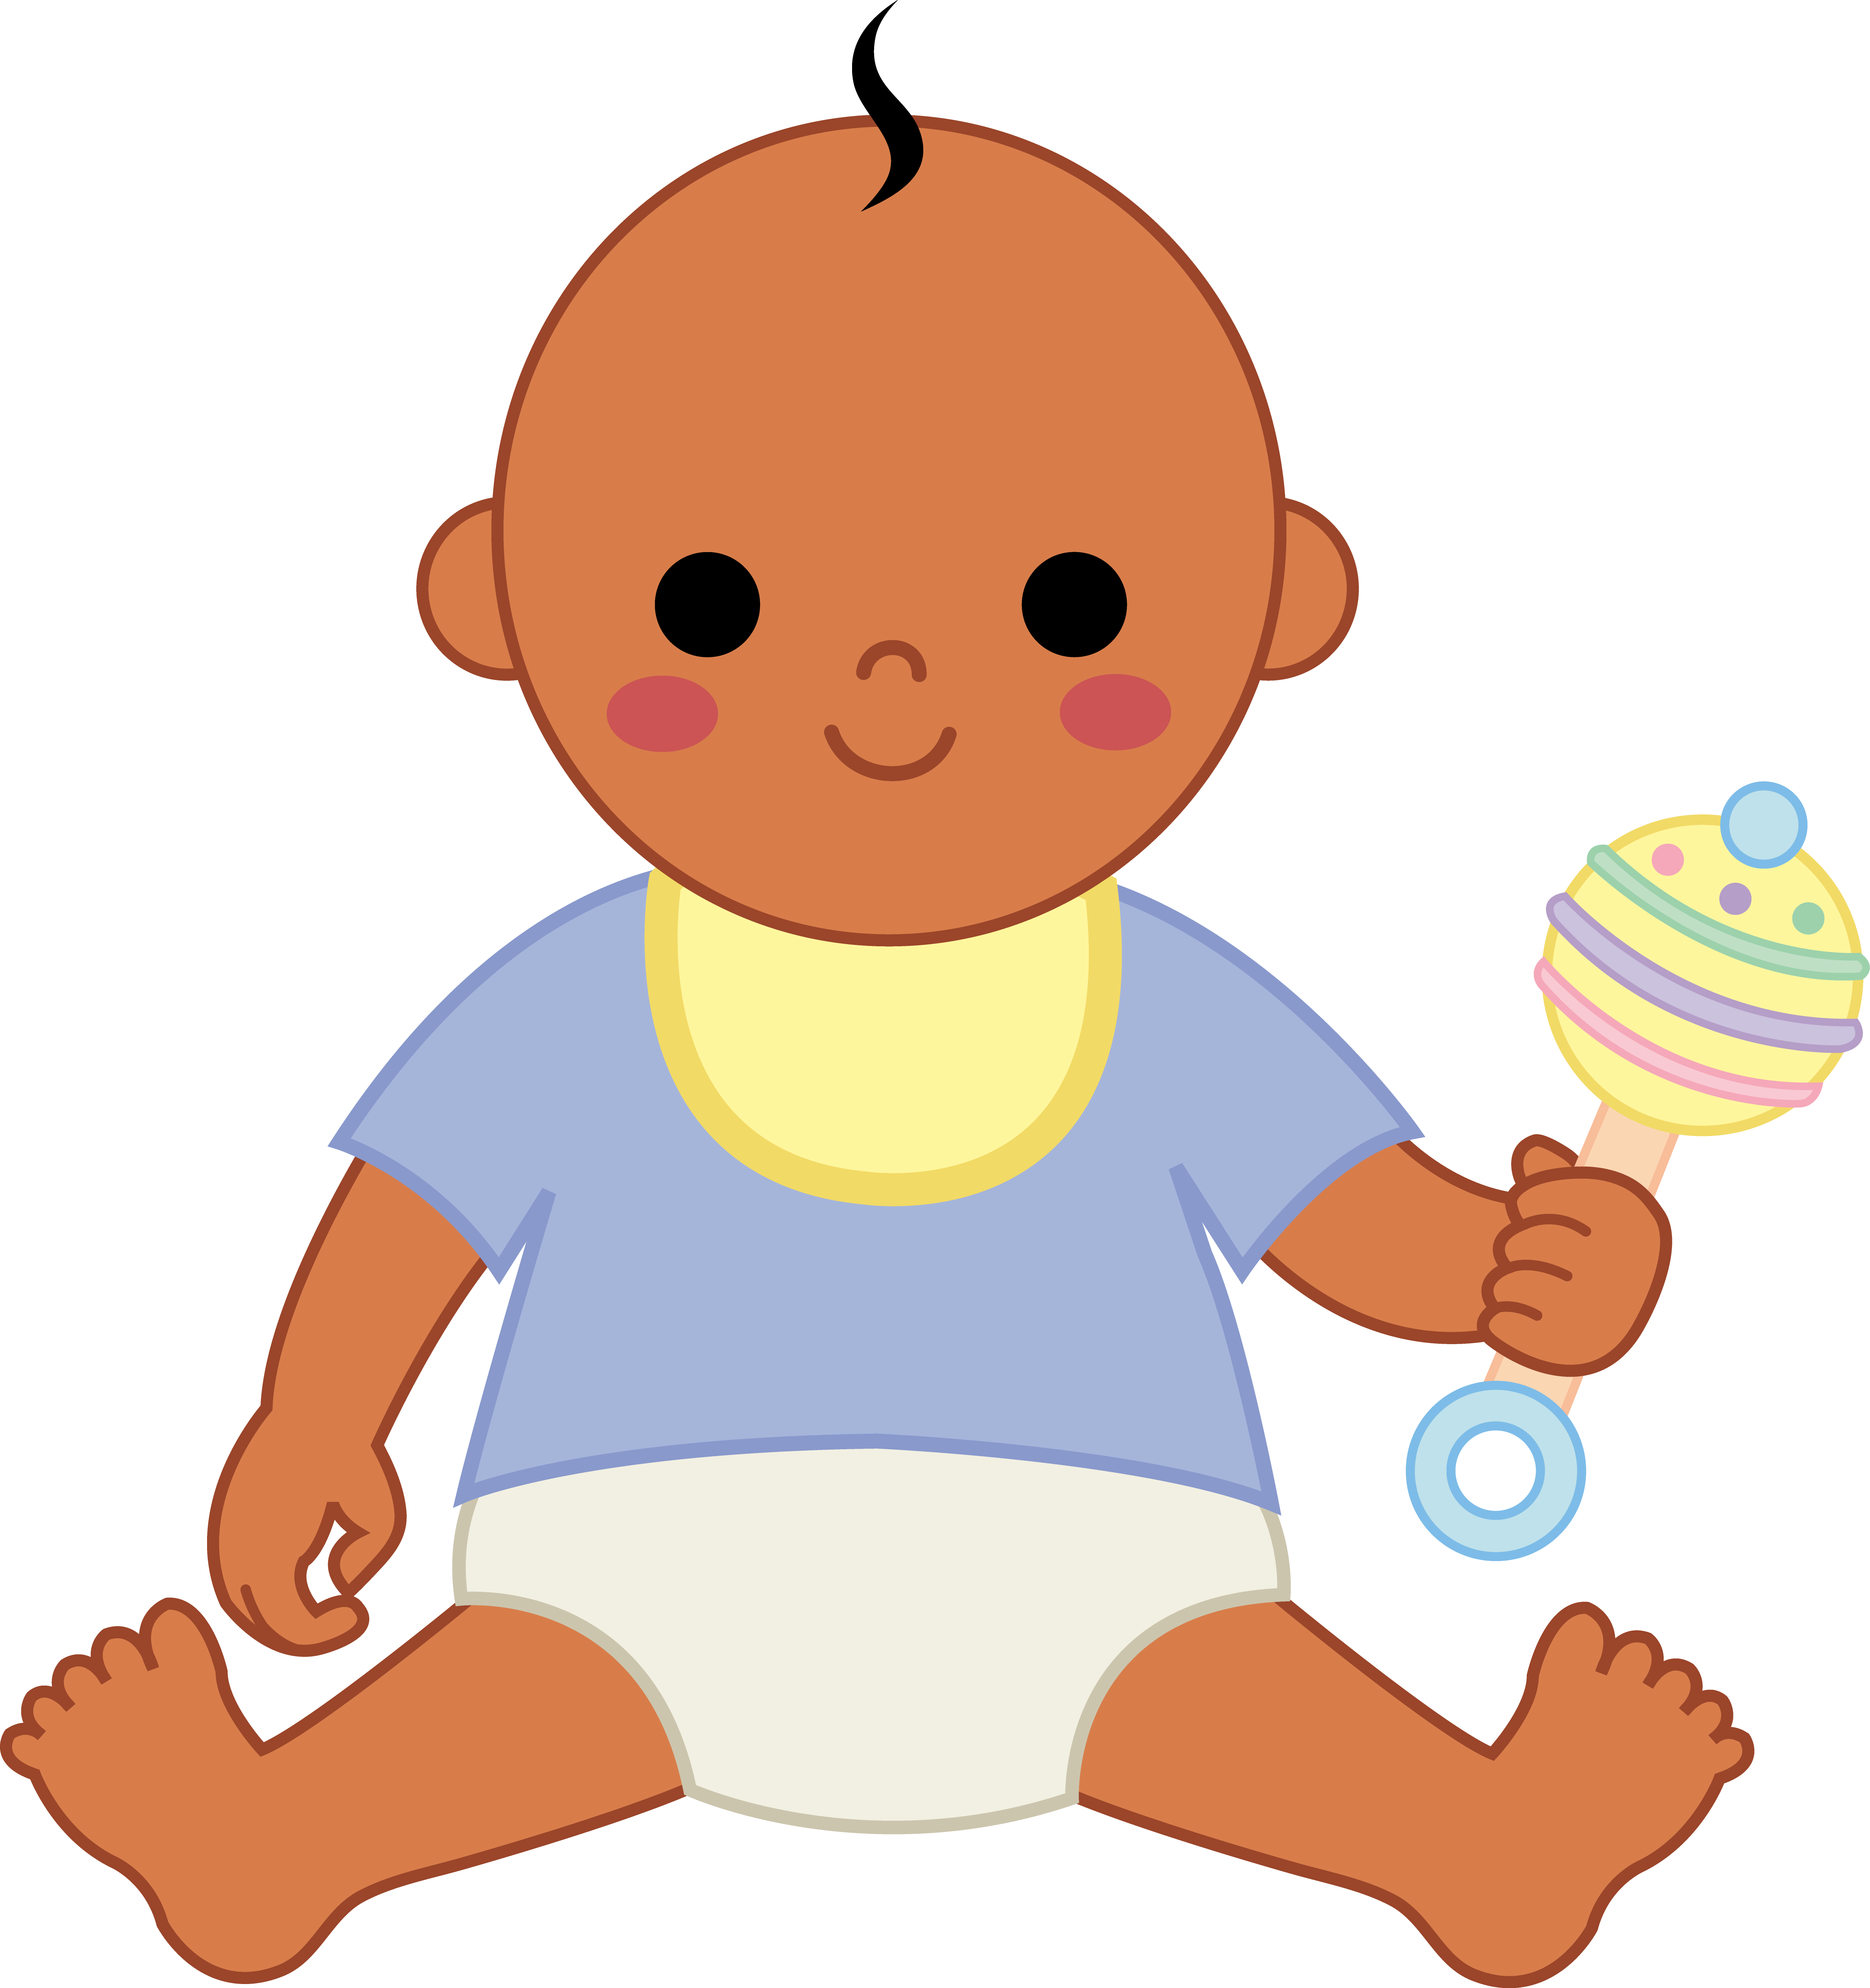 free download baby boy clip art - photo #28